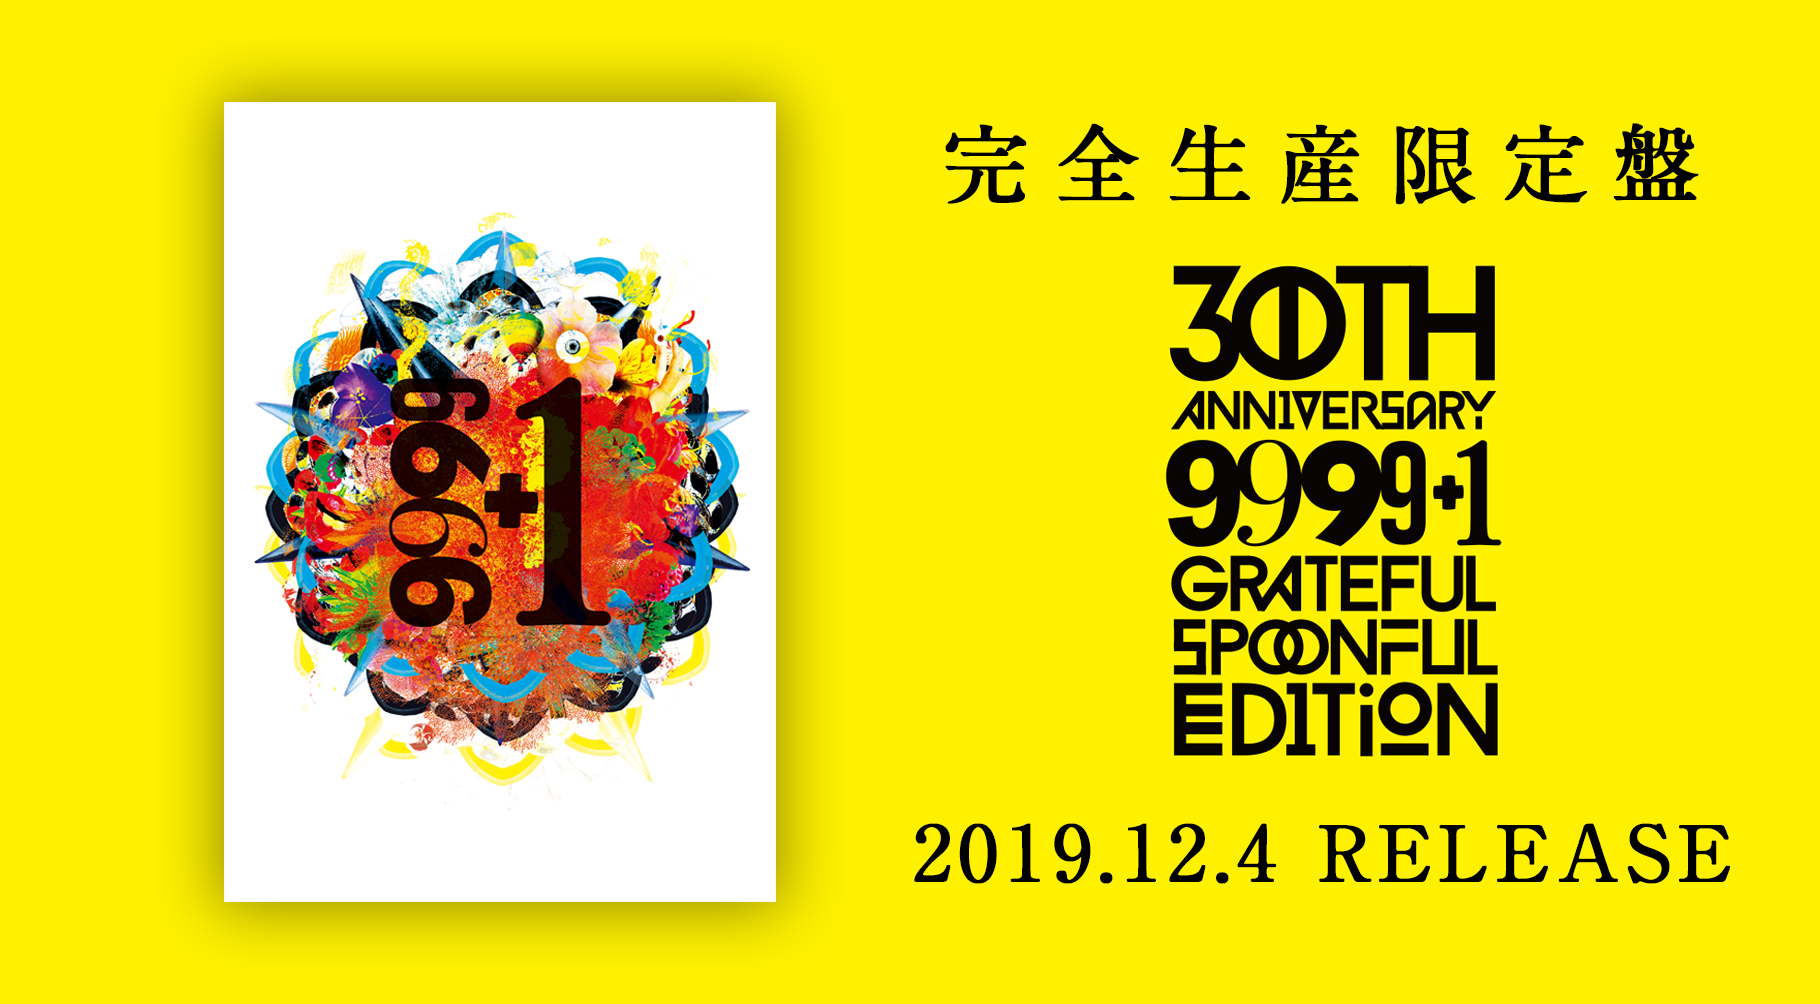 「9999+1」2019.12.4 RELEASE!